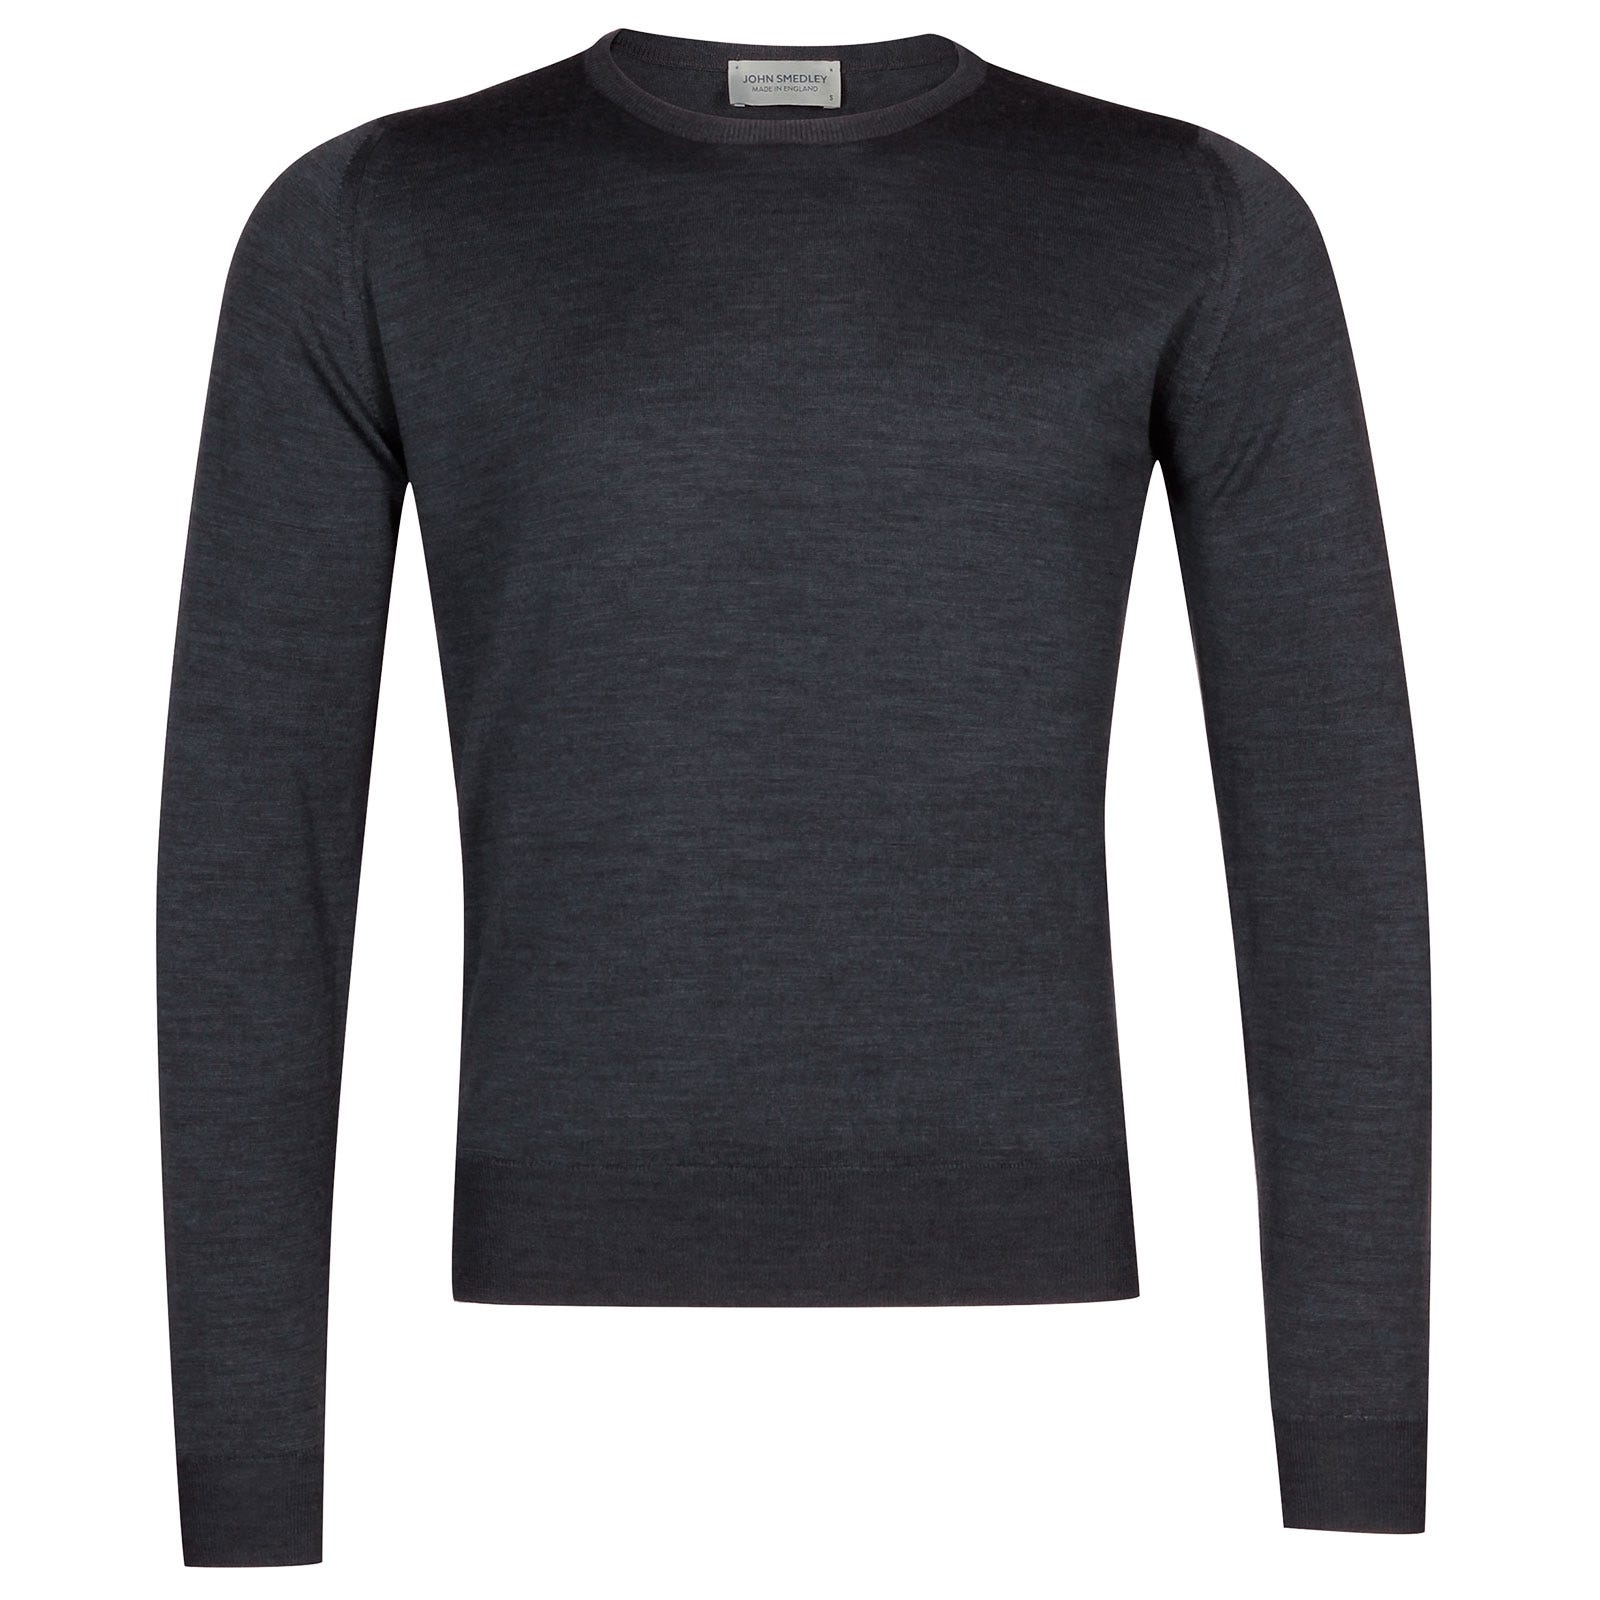 John Smedley Sicily Merino Wool Pullover in Charcoal-XXL